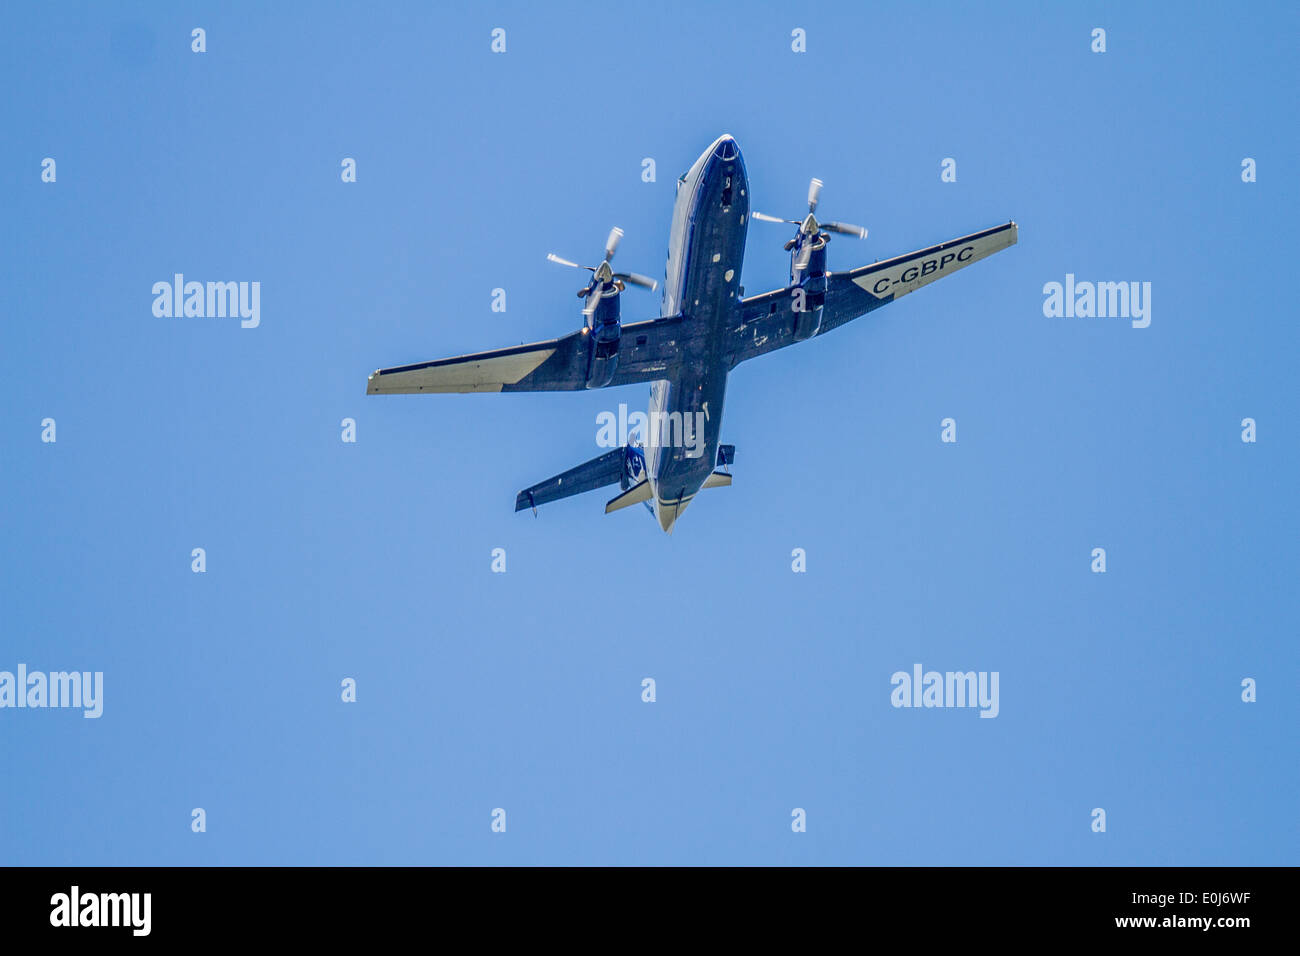 Beech 1900C-2. Twin prop airplane banking and overhead against a blue sky. Stock Photo